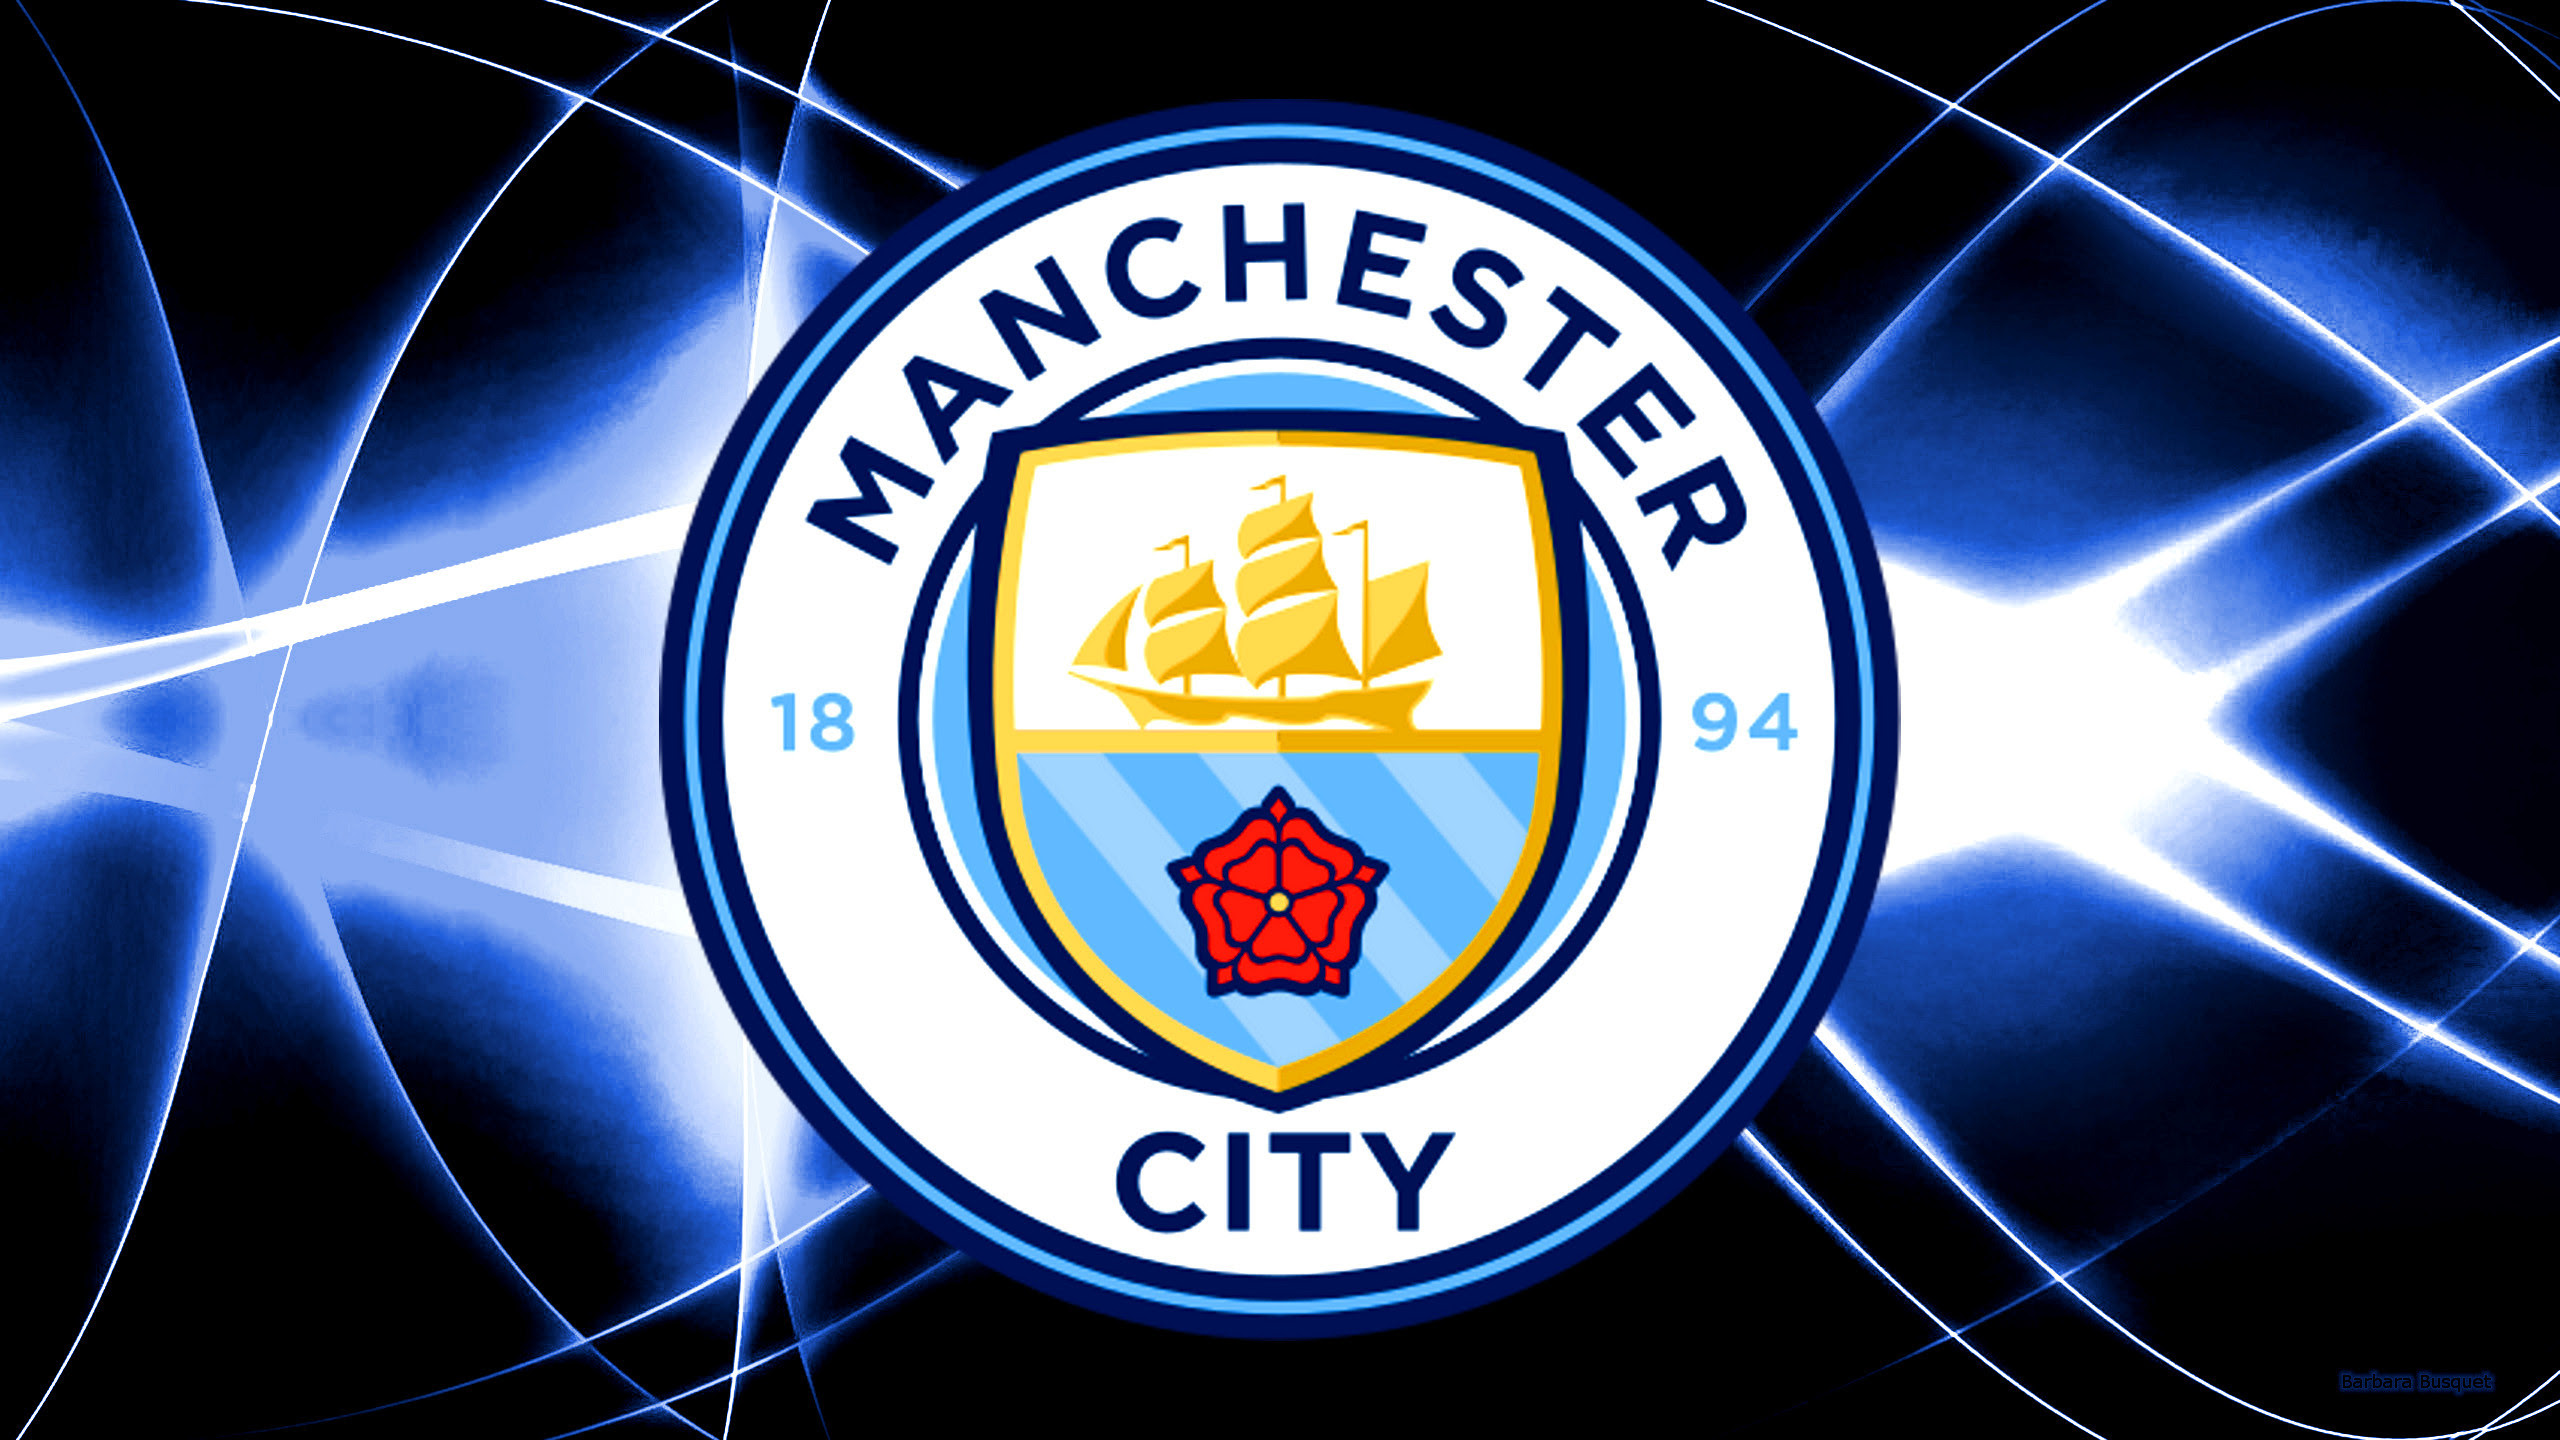 Manchester City Wallpapers - Barbaras HD Wallpapers